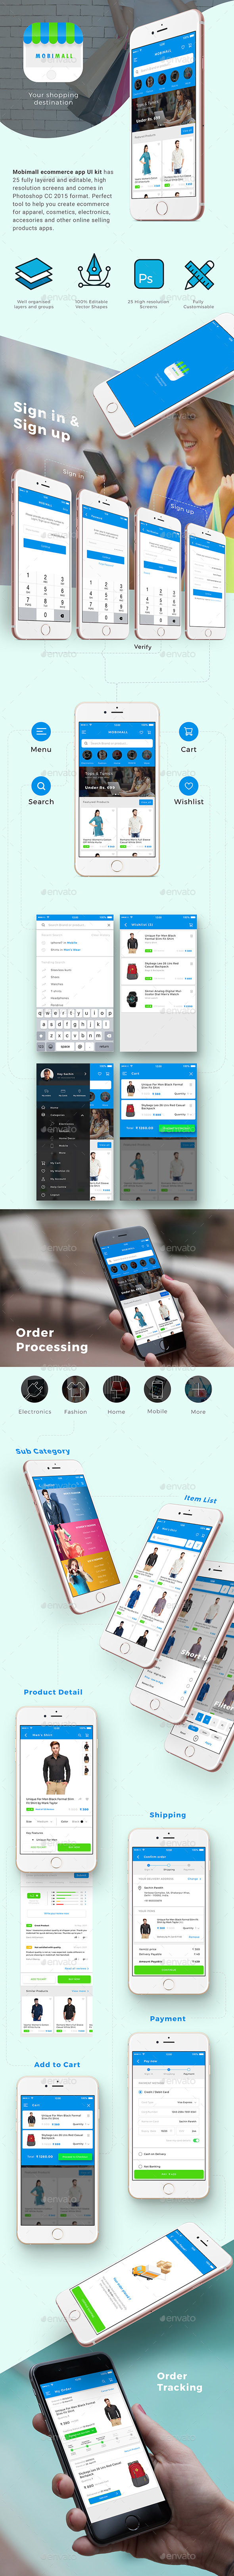 E commerce App UI Set | MobiMall - User Interfaces Web Elements